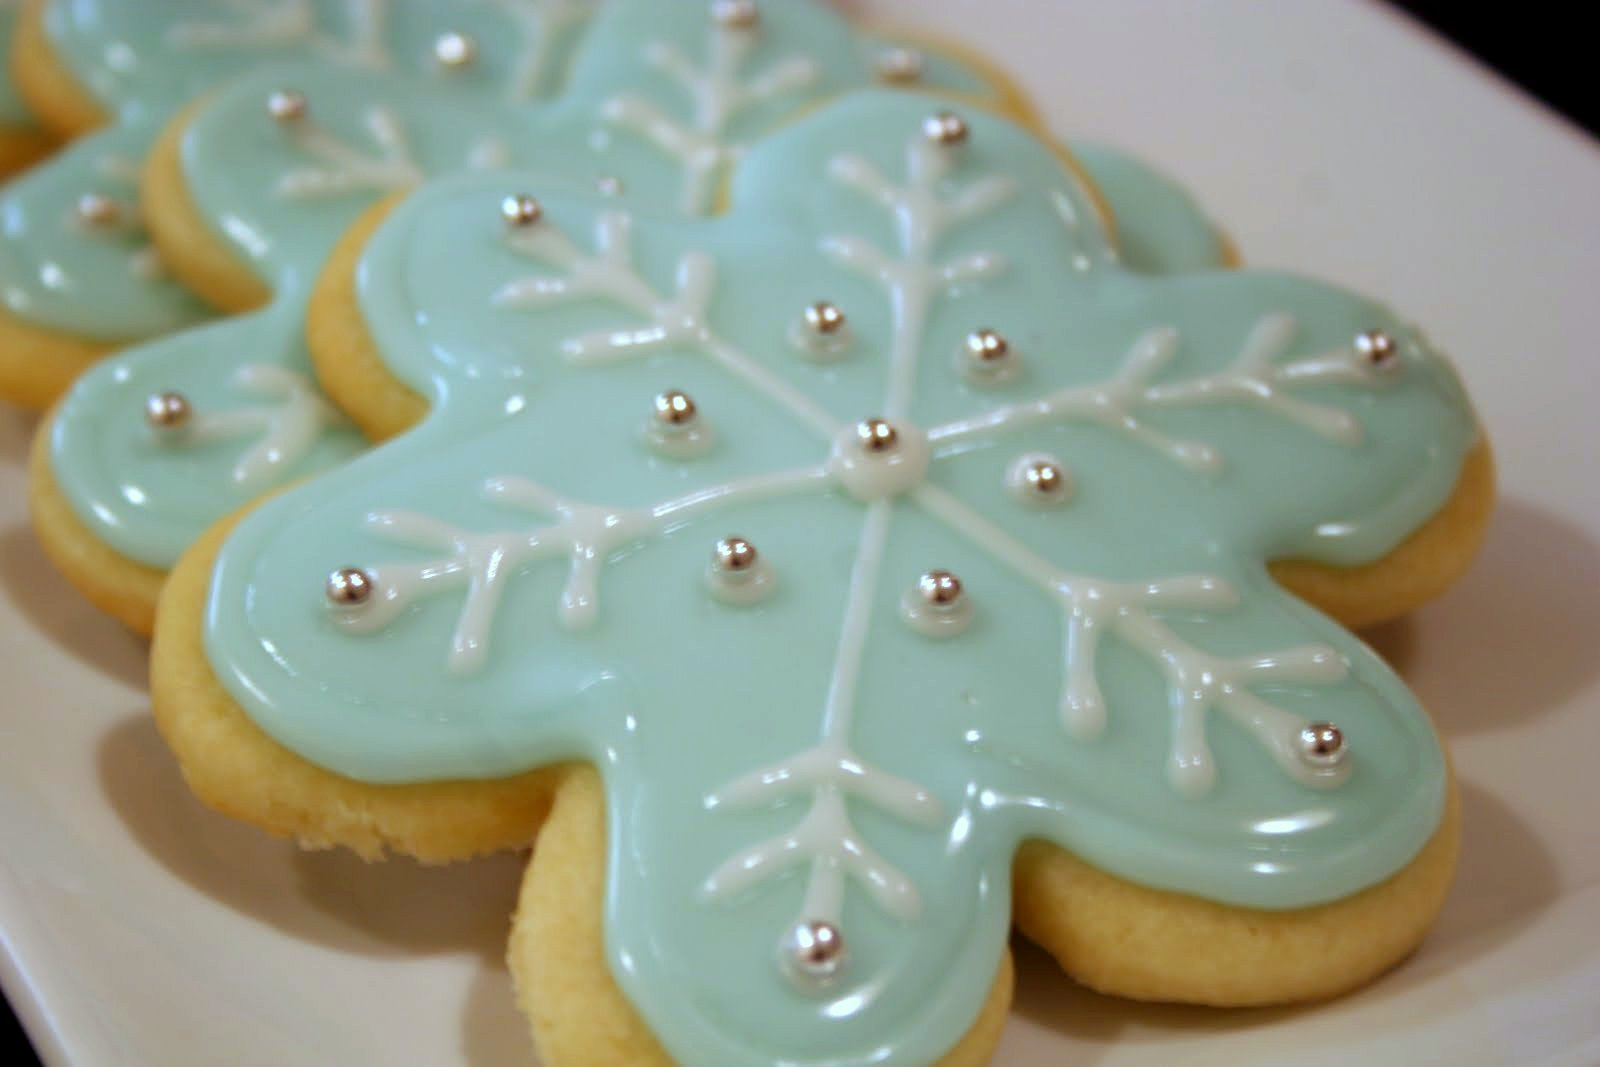 10 Best Sugar Cookie Icing That Hardens Recipes   Cookie Icing Recipe Powdered Sugar